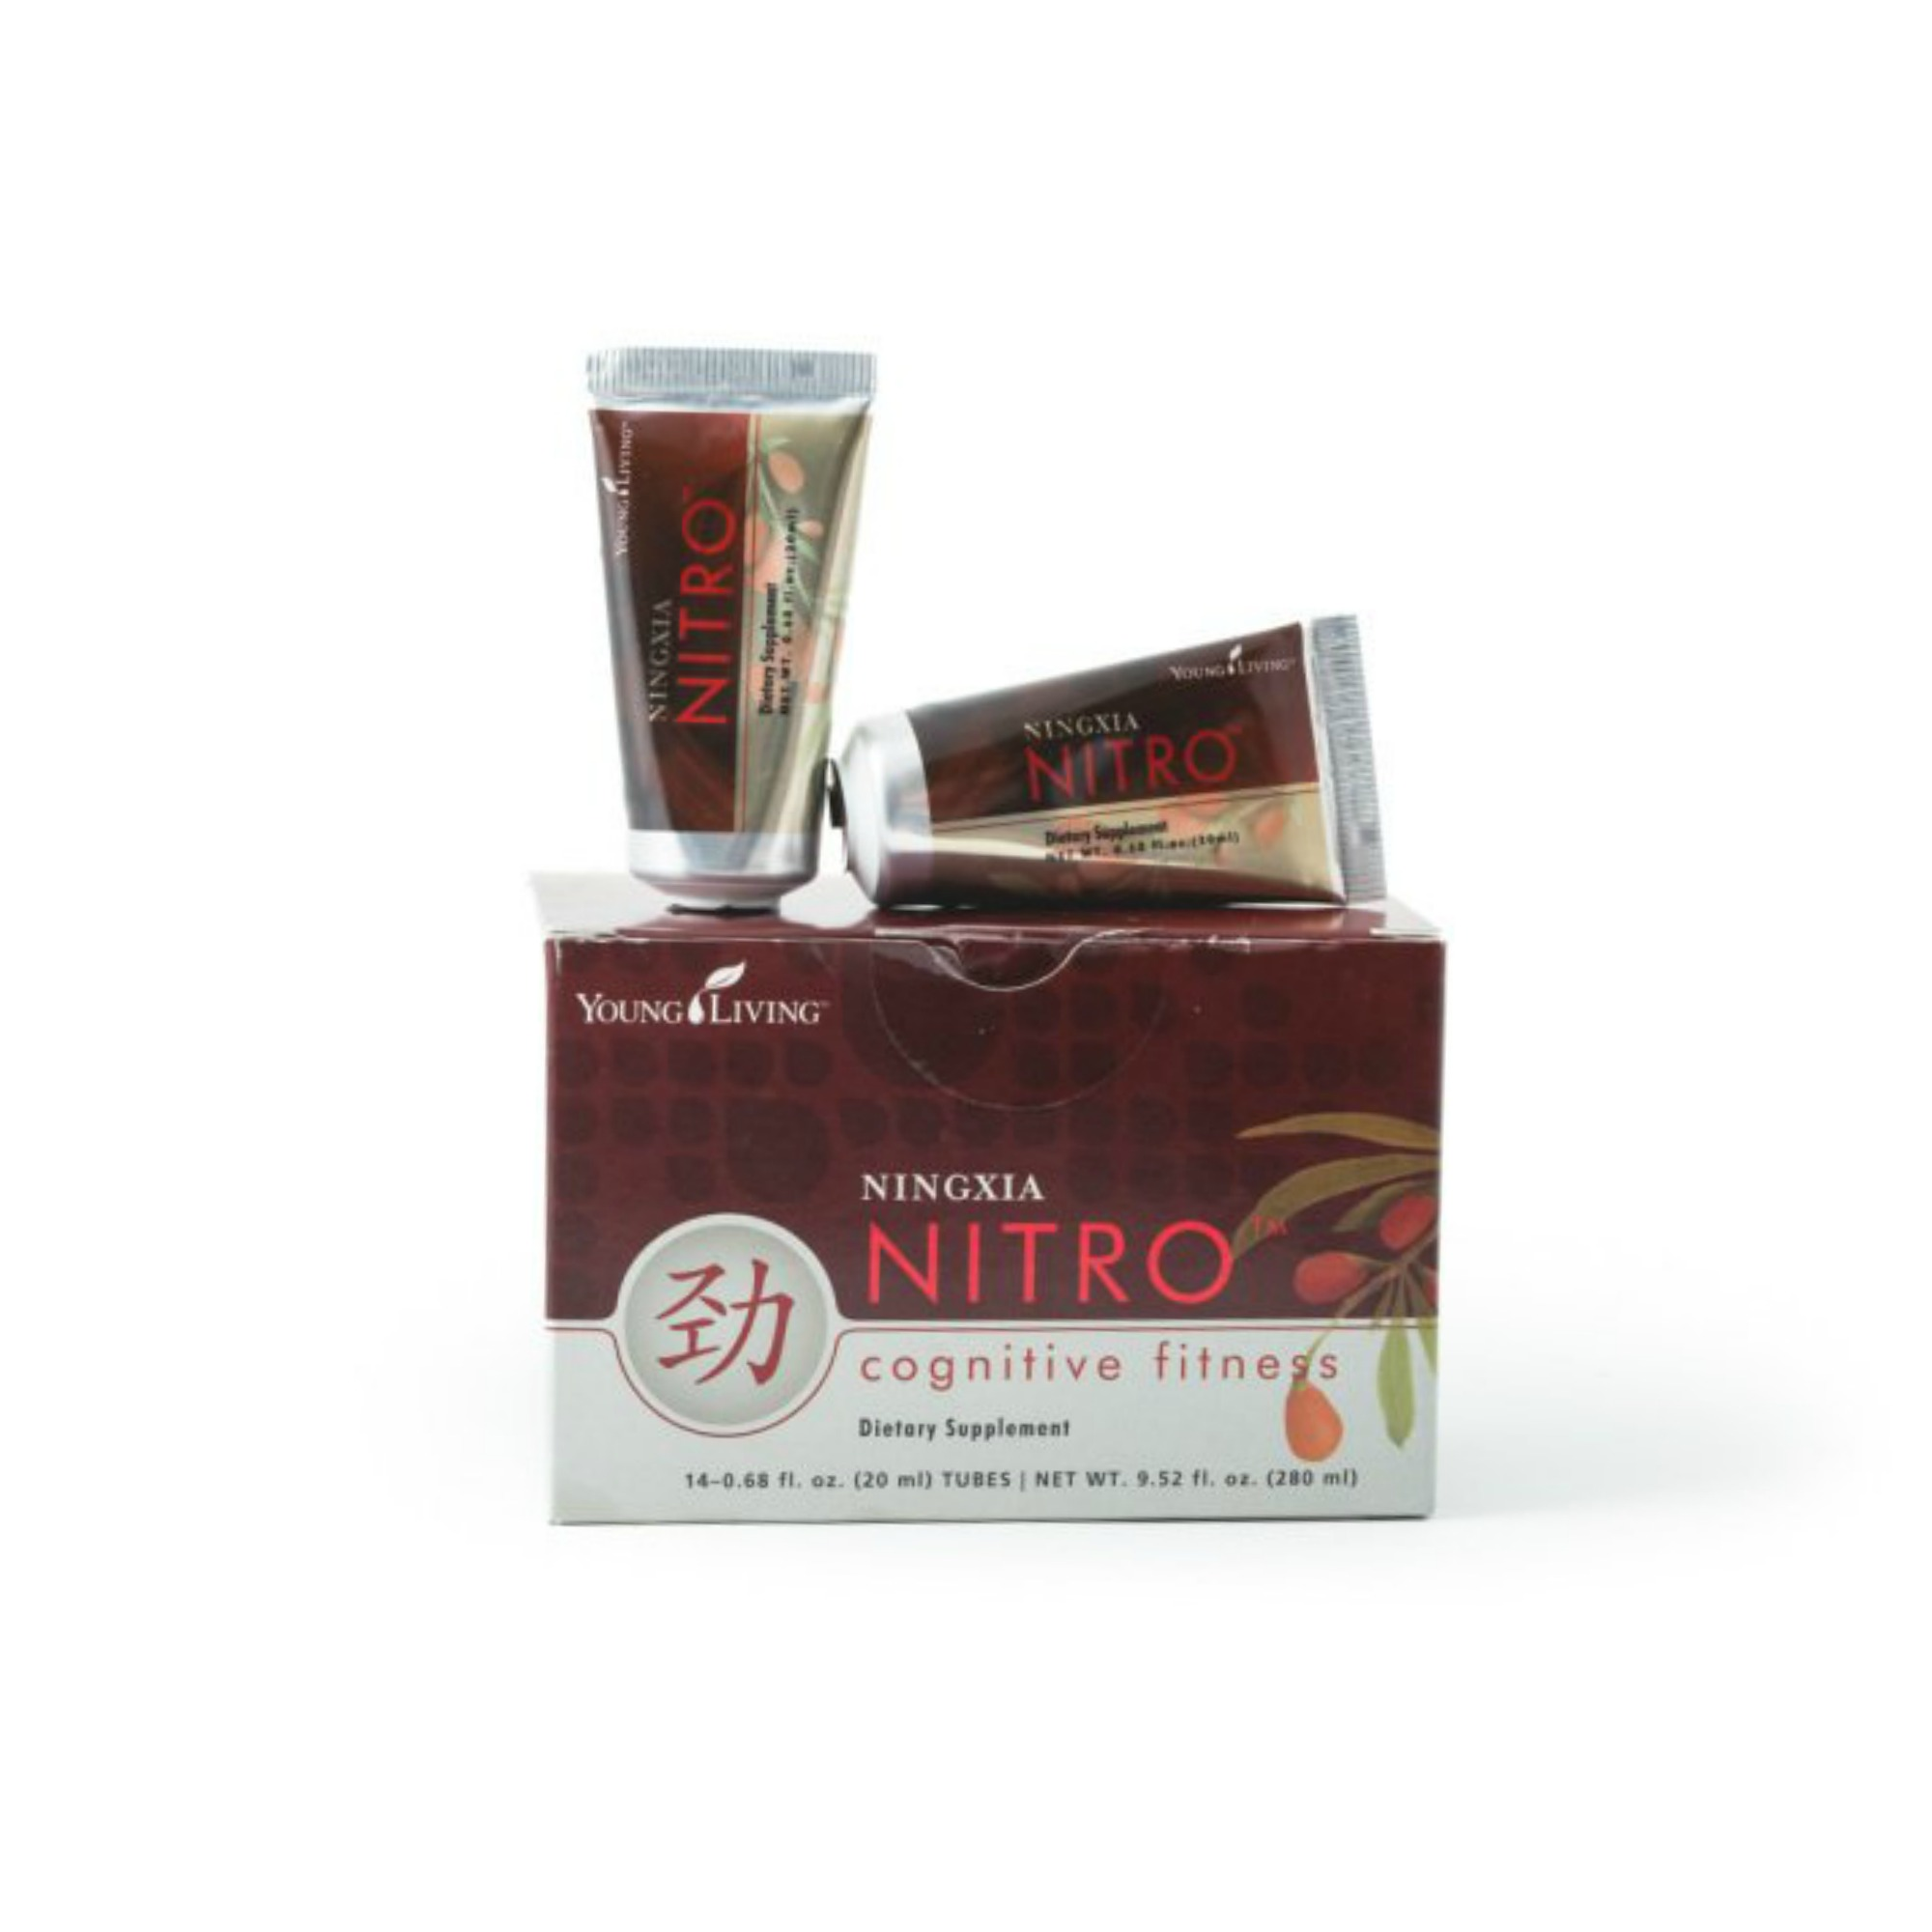 NINGXIA NITRO    NingXia Nitro® is a perfect pick-me-up without the sugar or caffeine overload. Infused with essential oils, botanical extracts, D-ribose, Korean ginseng, and green tea extract, NingXia Nitro supports alertness, as well as cognitive and physical fitness. Stash Nitro wherever you need it with its small, convenient packaging. It makes it a great addition to your office desk, gym bag, or purse.   Click here   to learn more about this product.